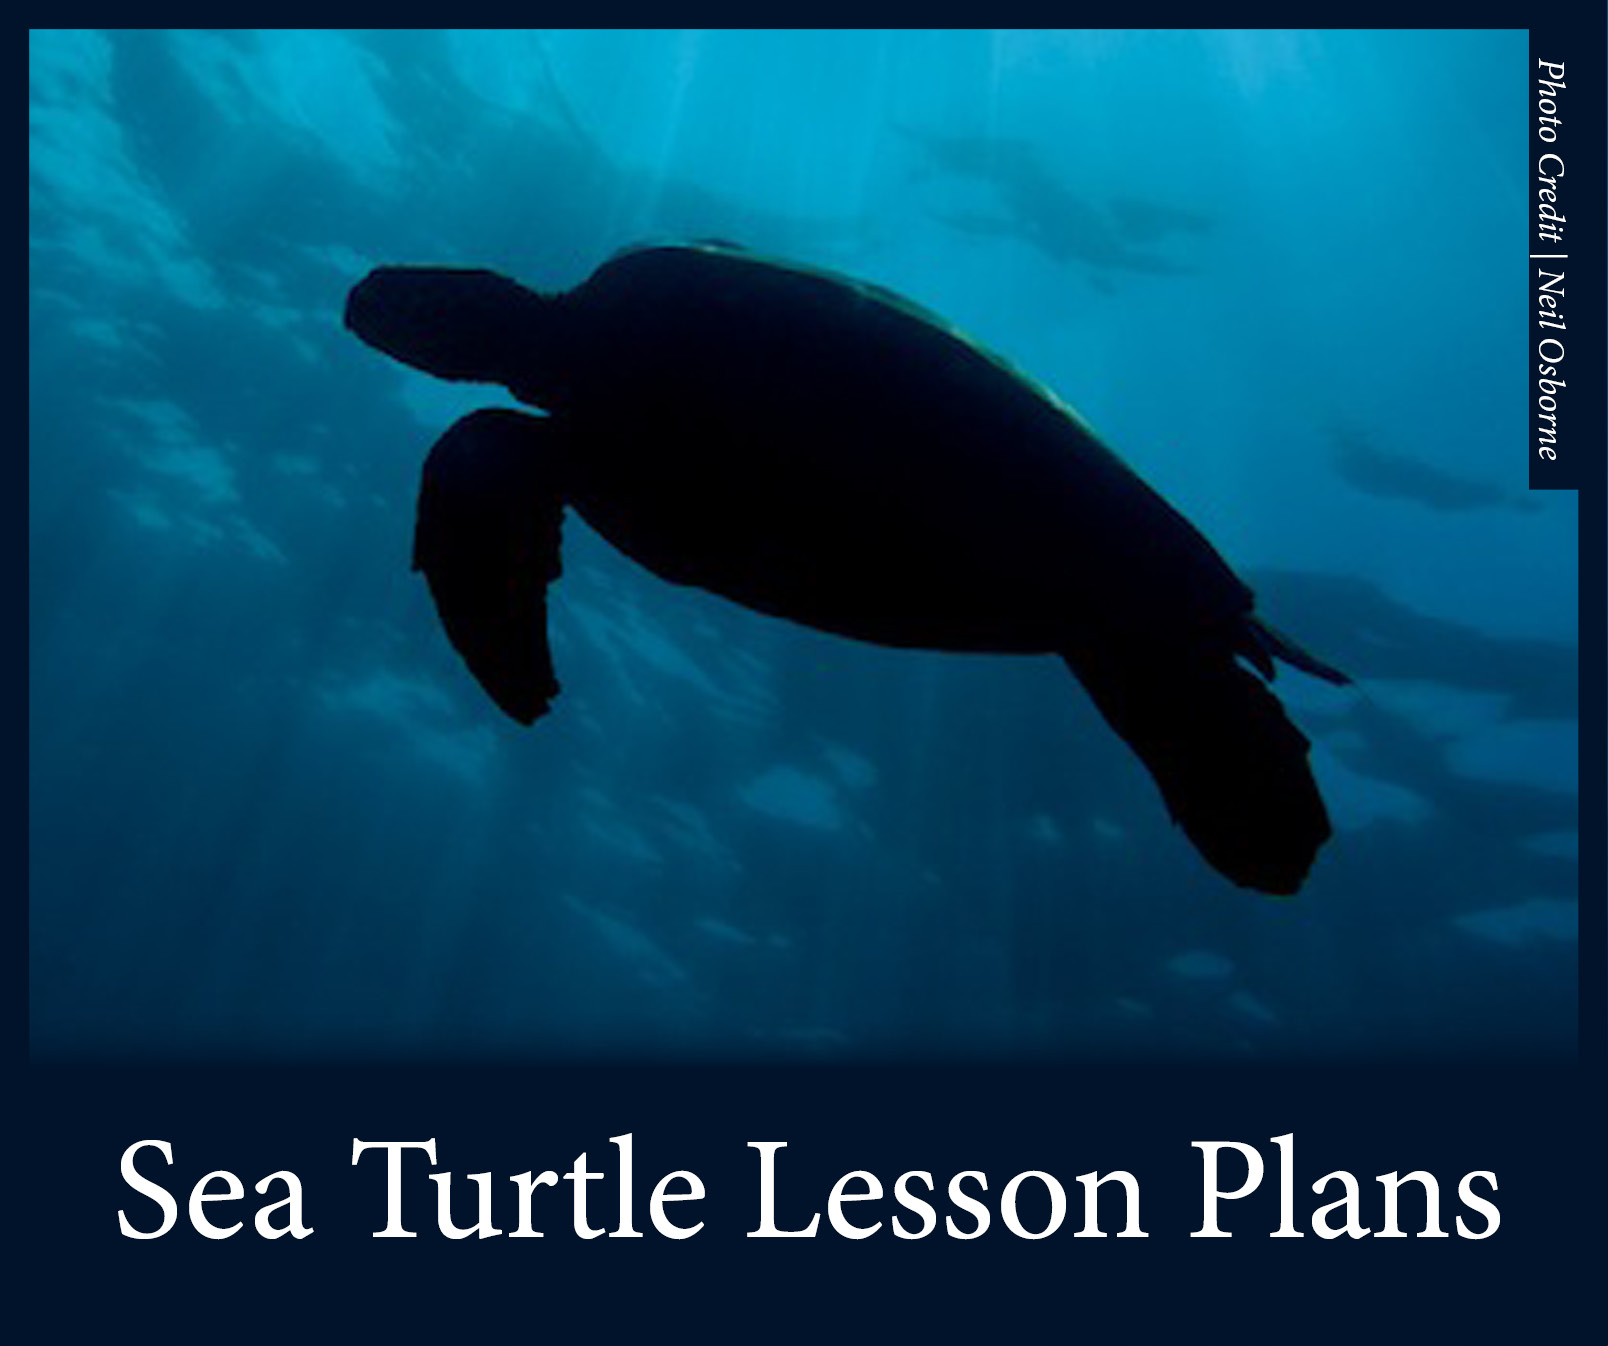 Sea Turtle Lesson Plans 2.jpg